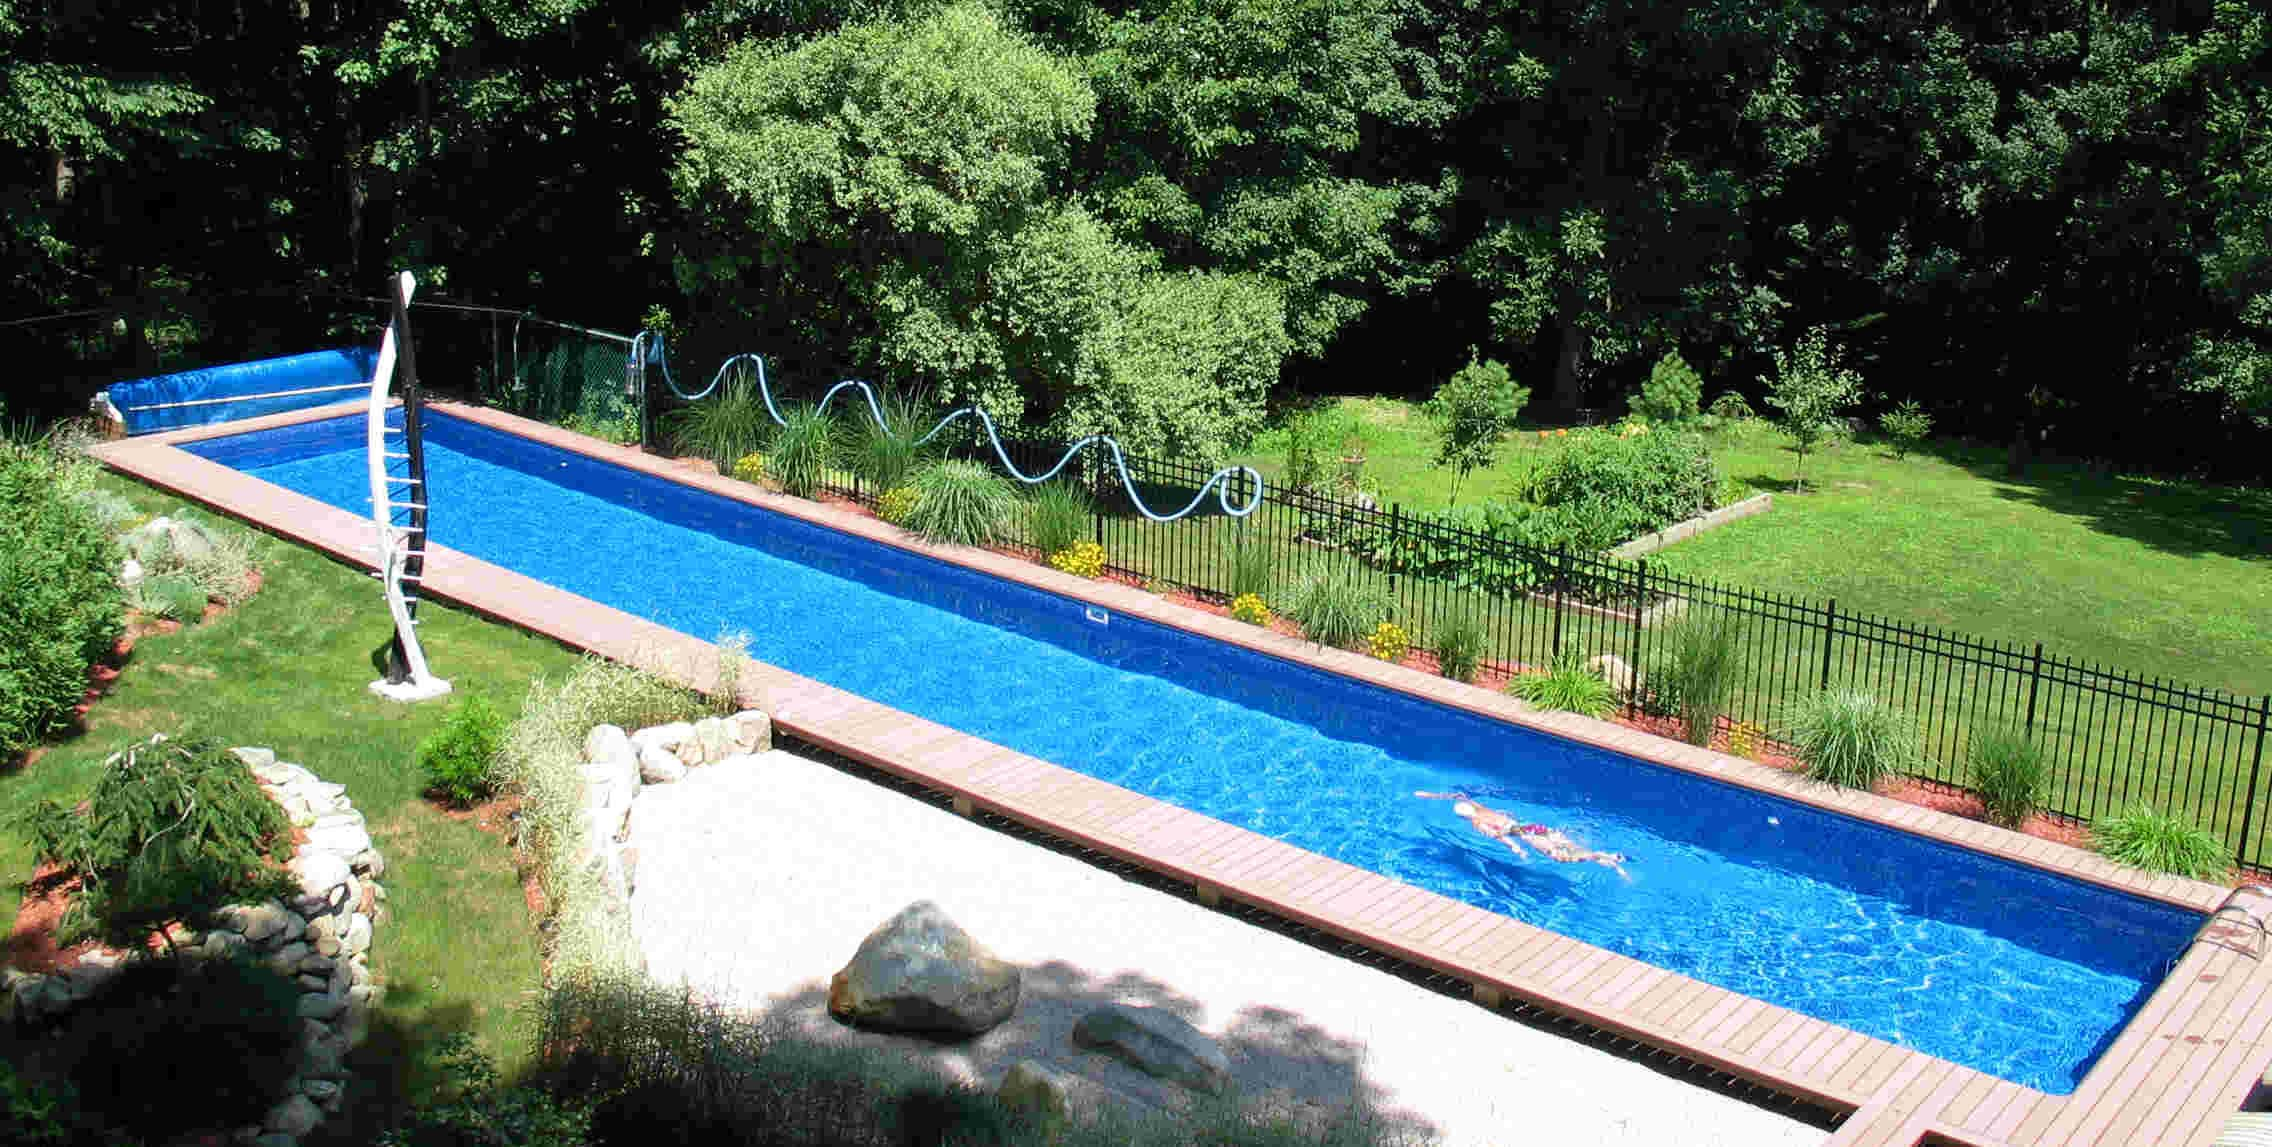 DIY Inground Swimming Pool